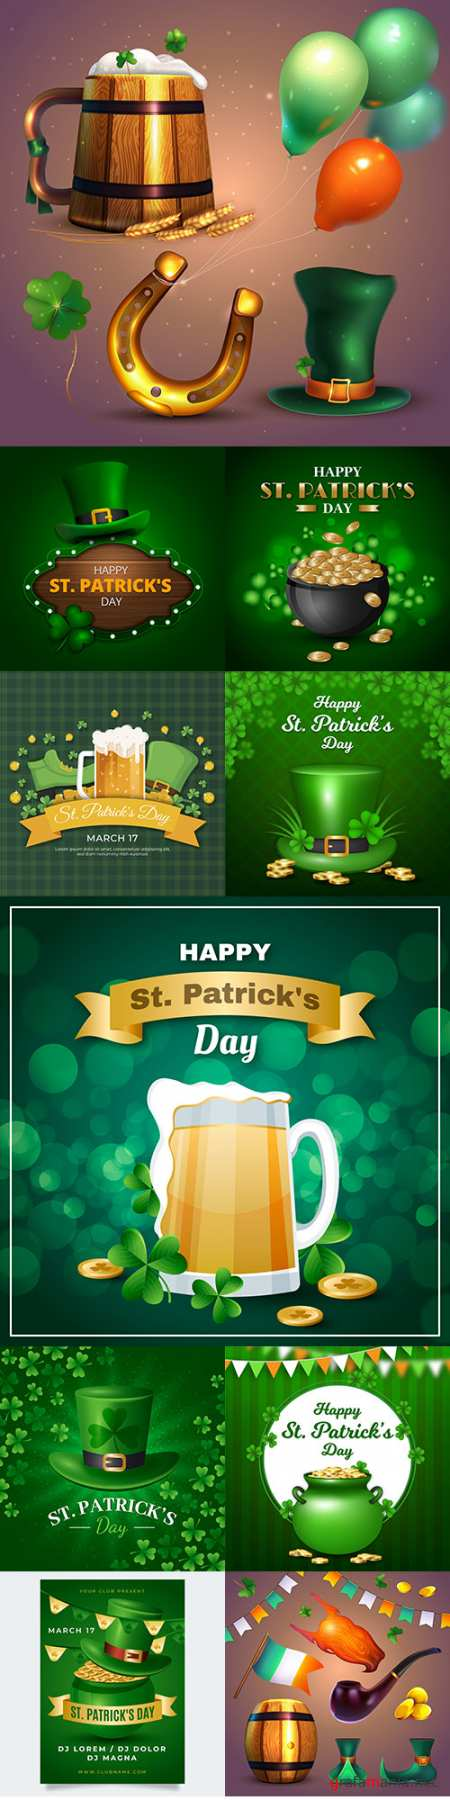 St. Patrick's Day party design vector illustrations 5